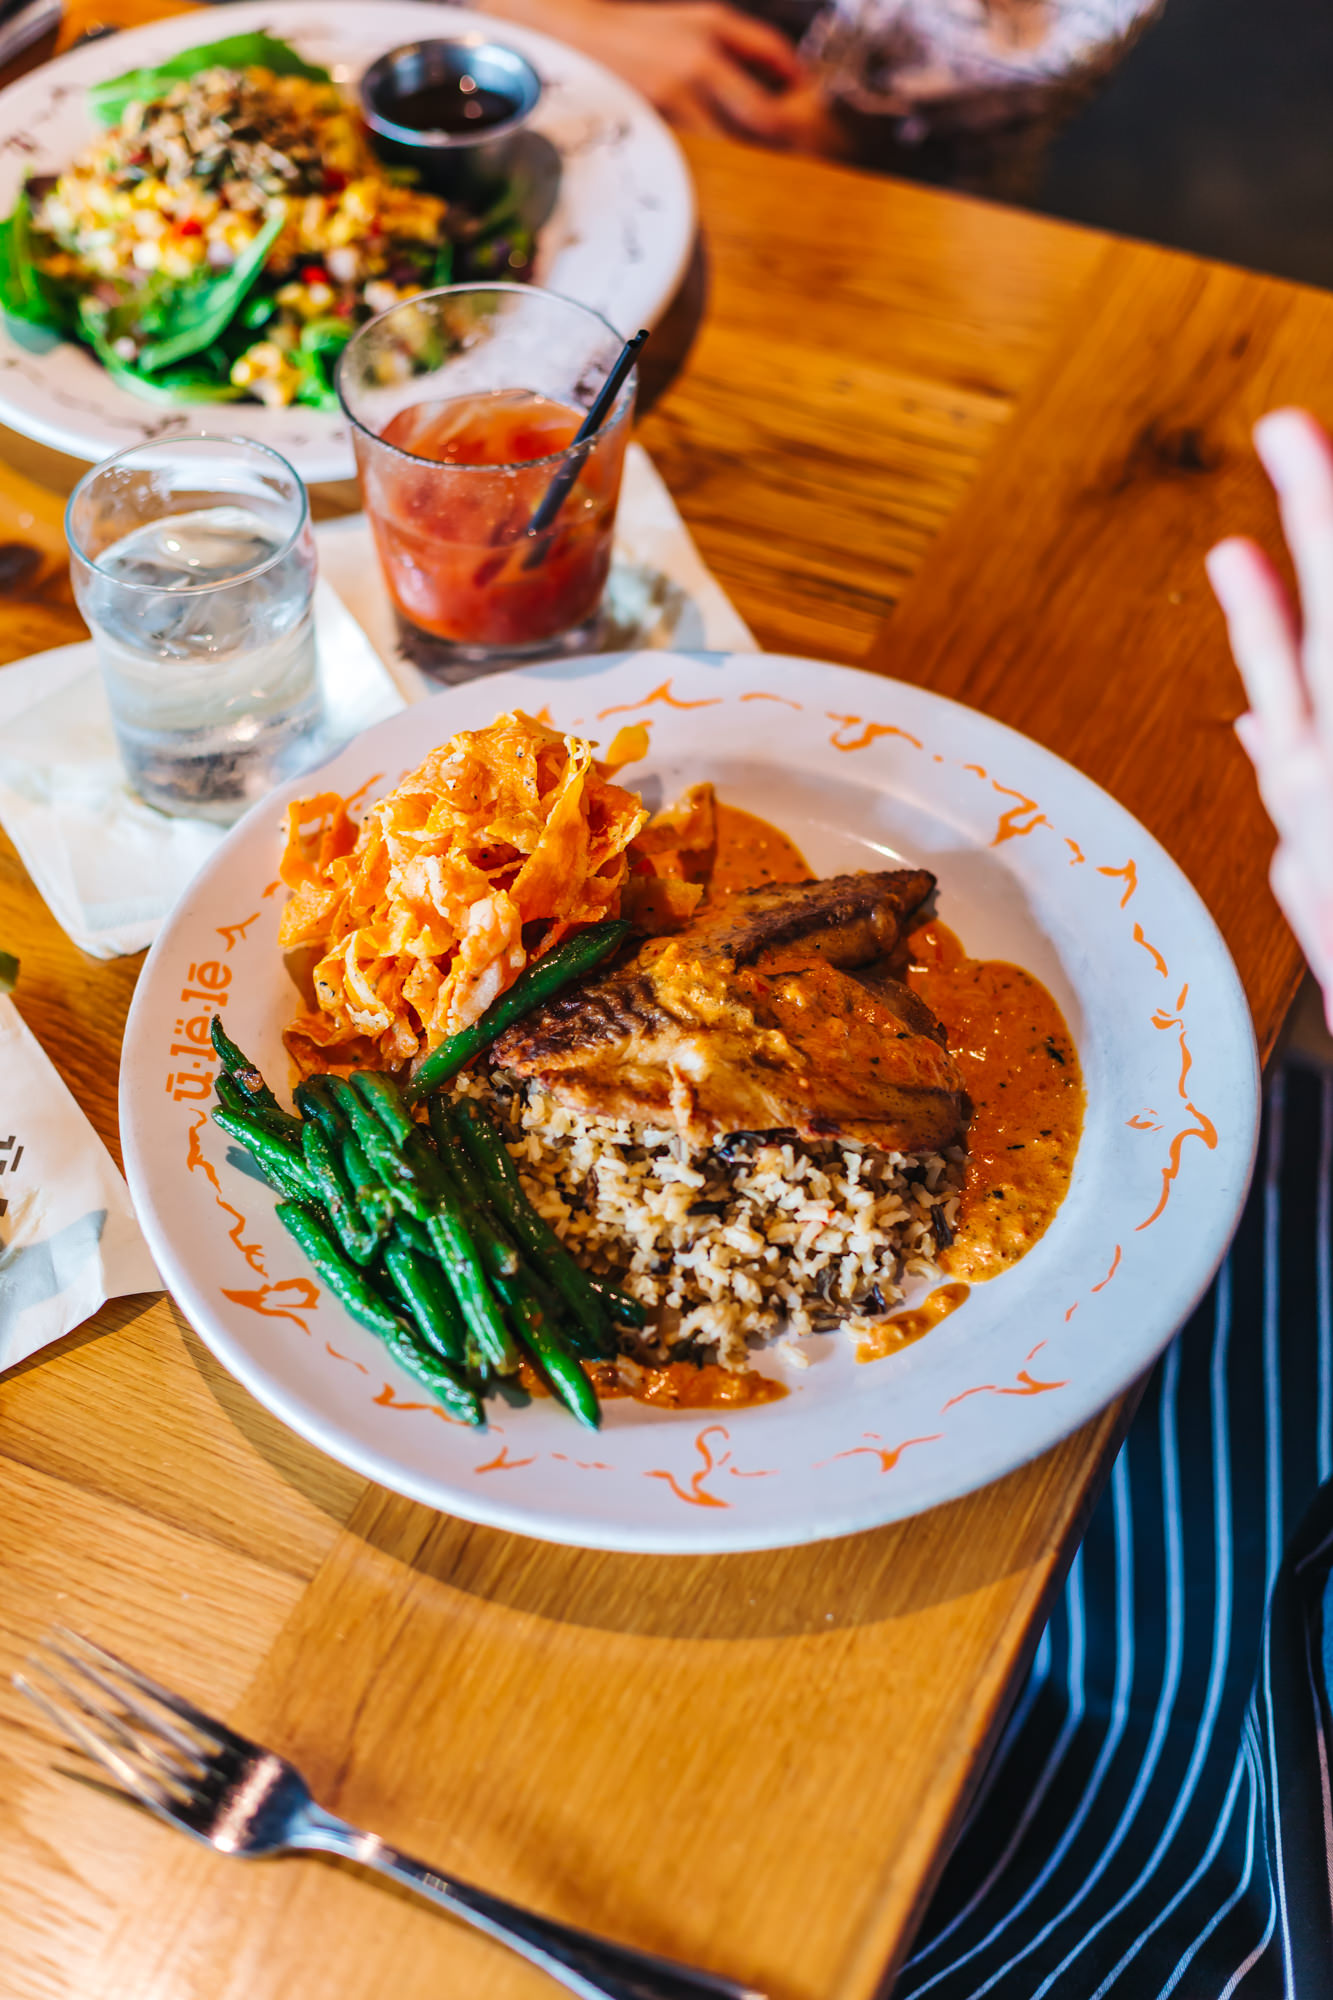 Delicious dishes at Ulele